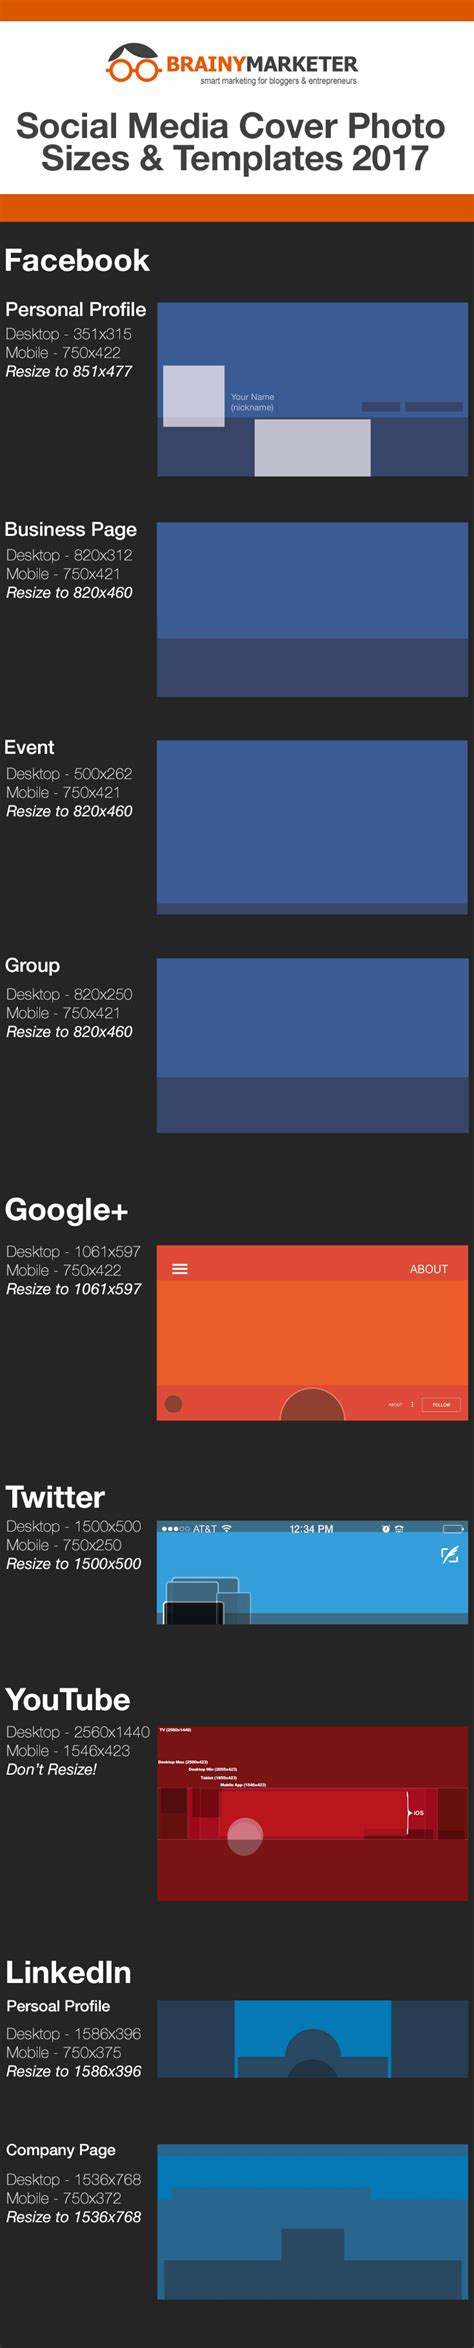 Updated Social Media Cover Photo Sizes And Templates For 2017 Free Cover Photo Template 2017